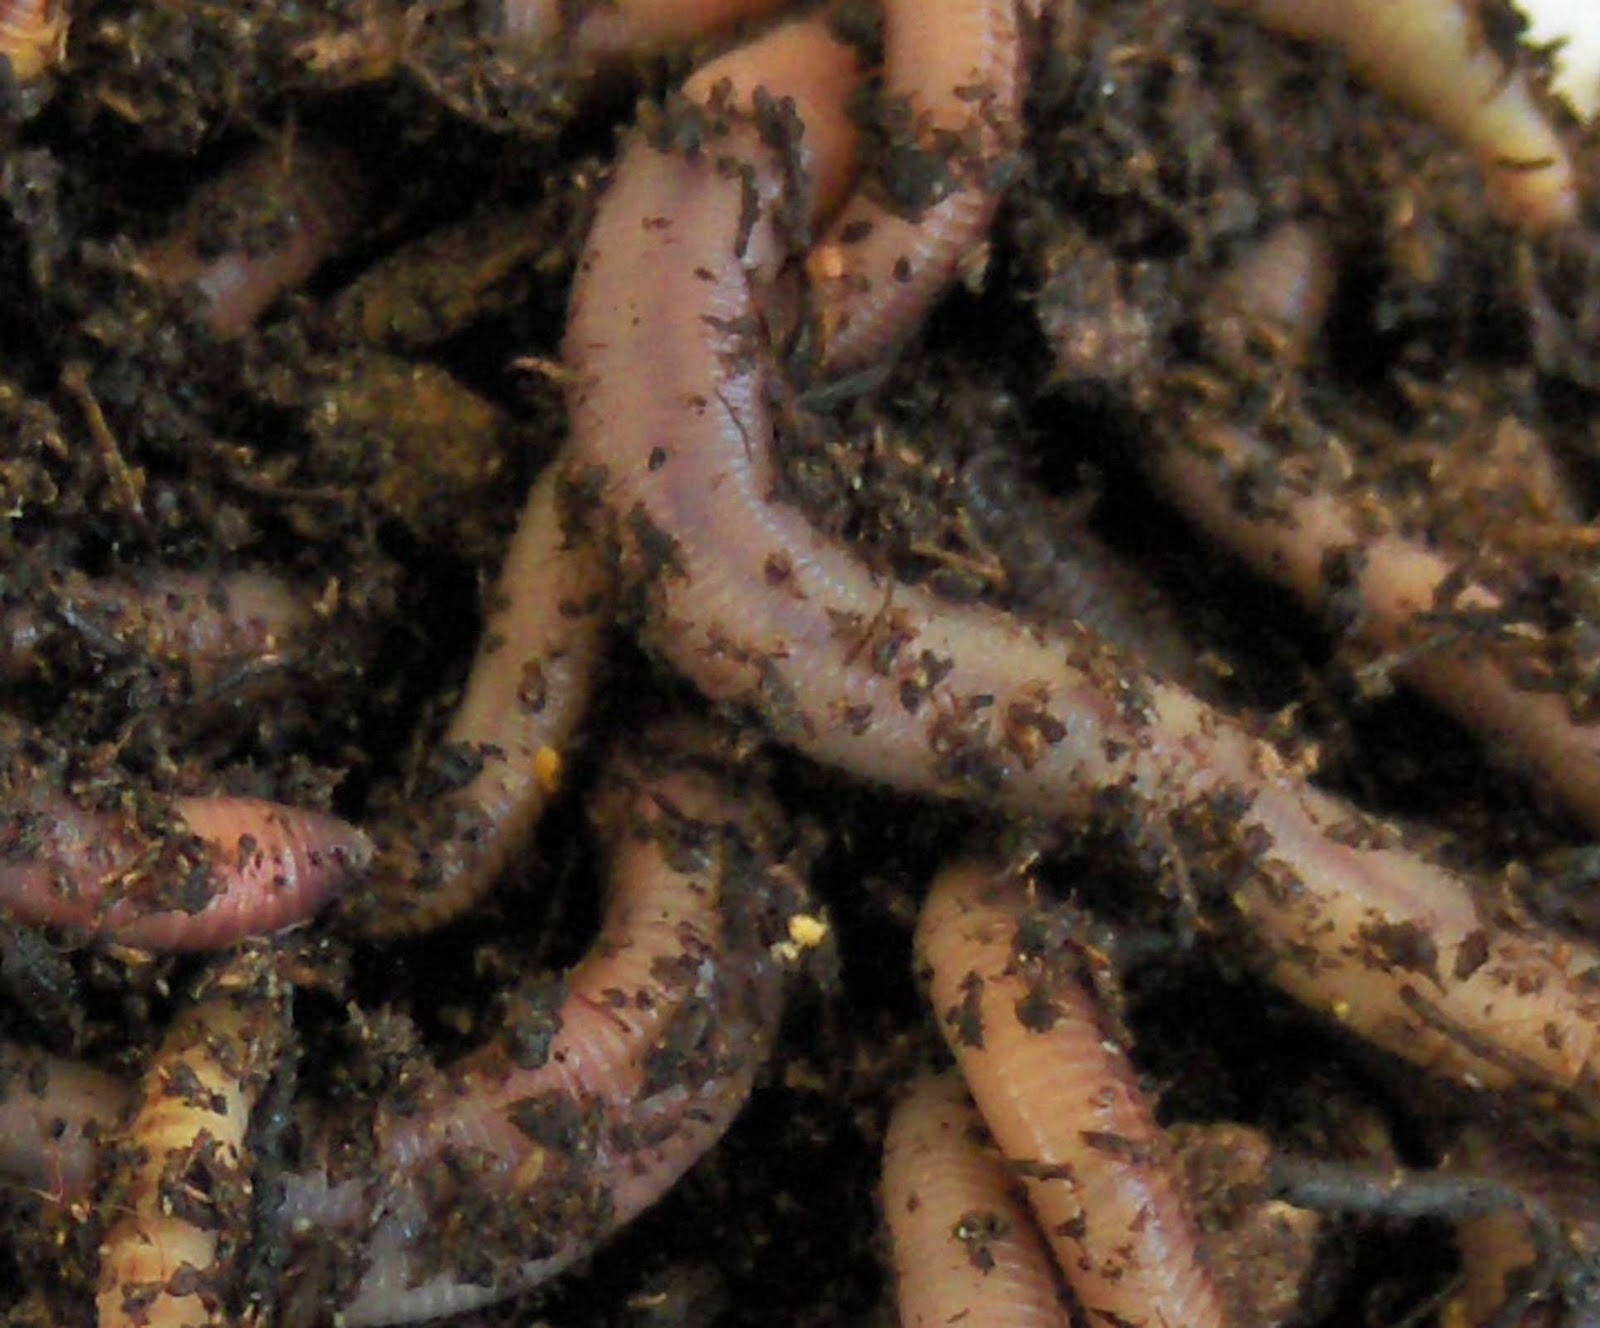 Do's and Don'ts of Worm Feeding